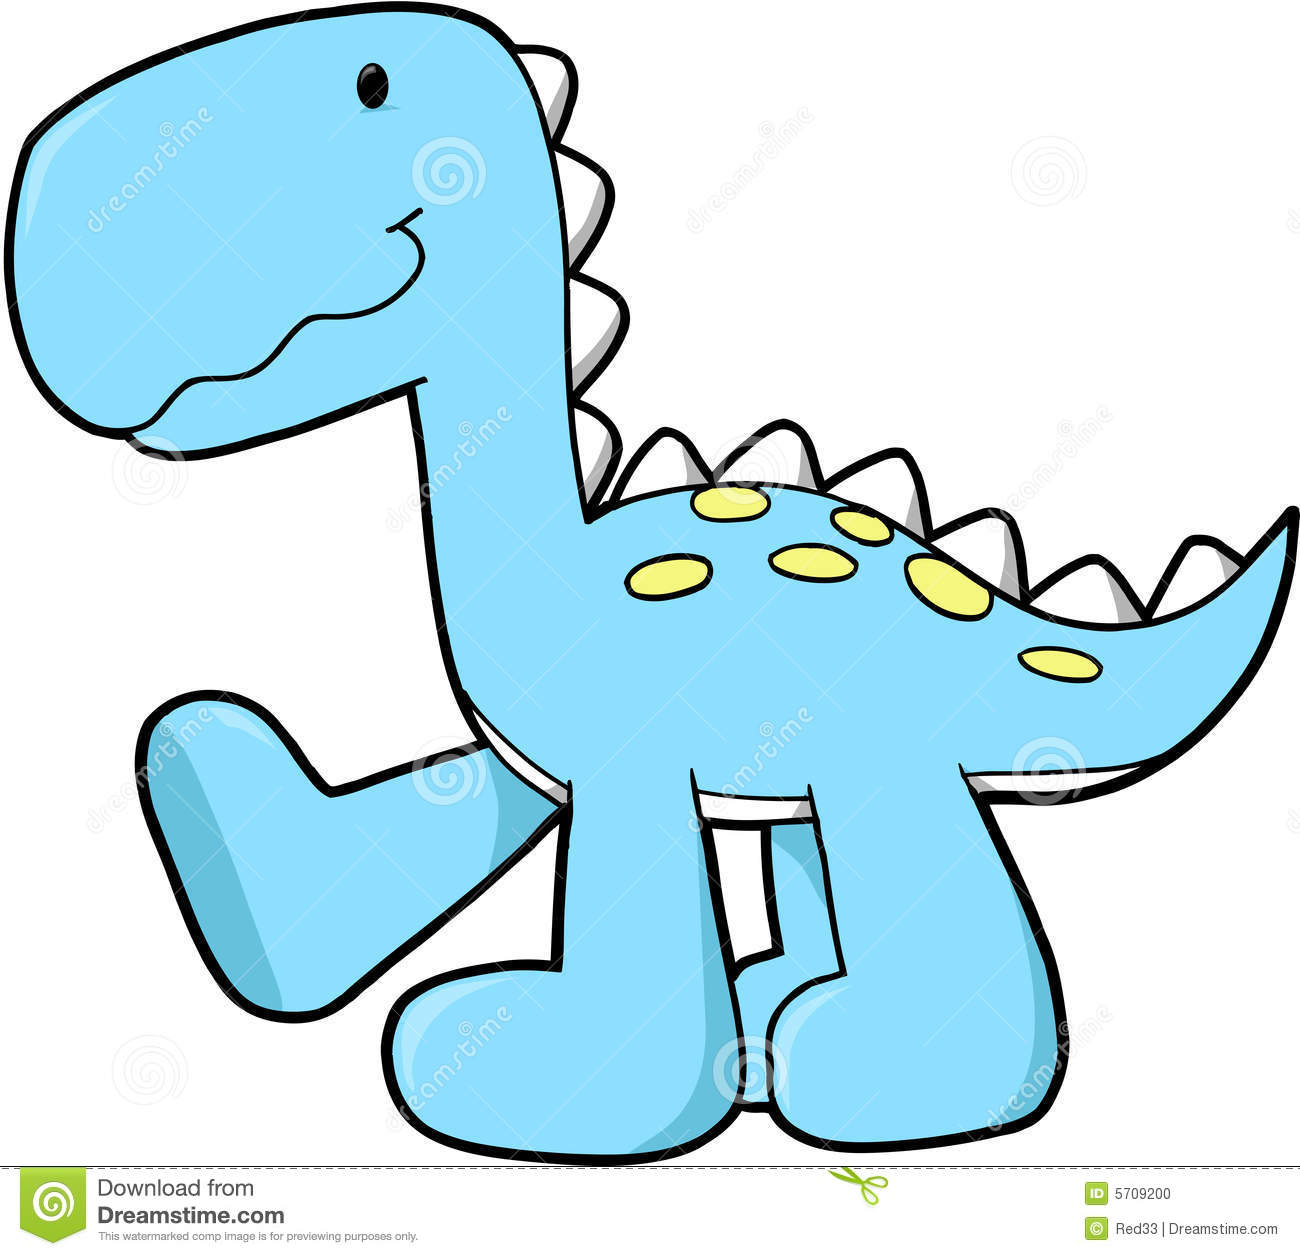 Cute Dinosaur Vector Stock Photo - Image: 5709200